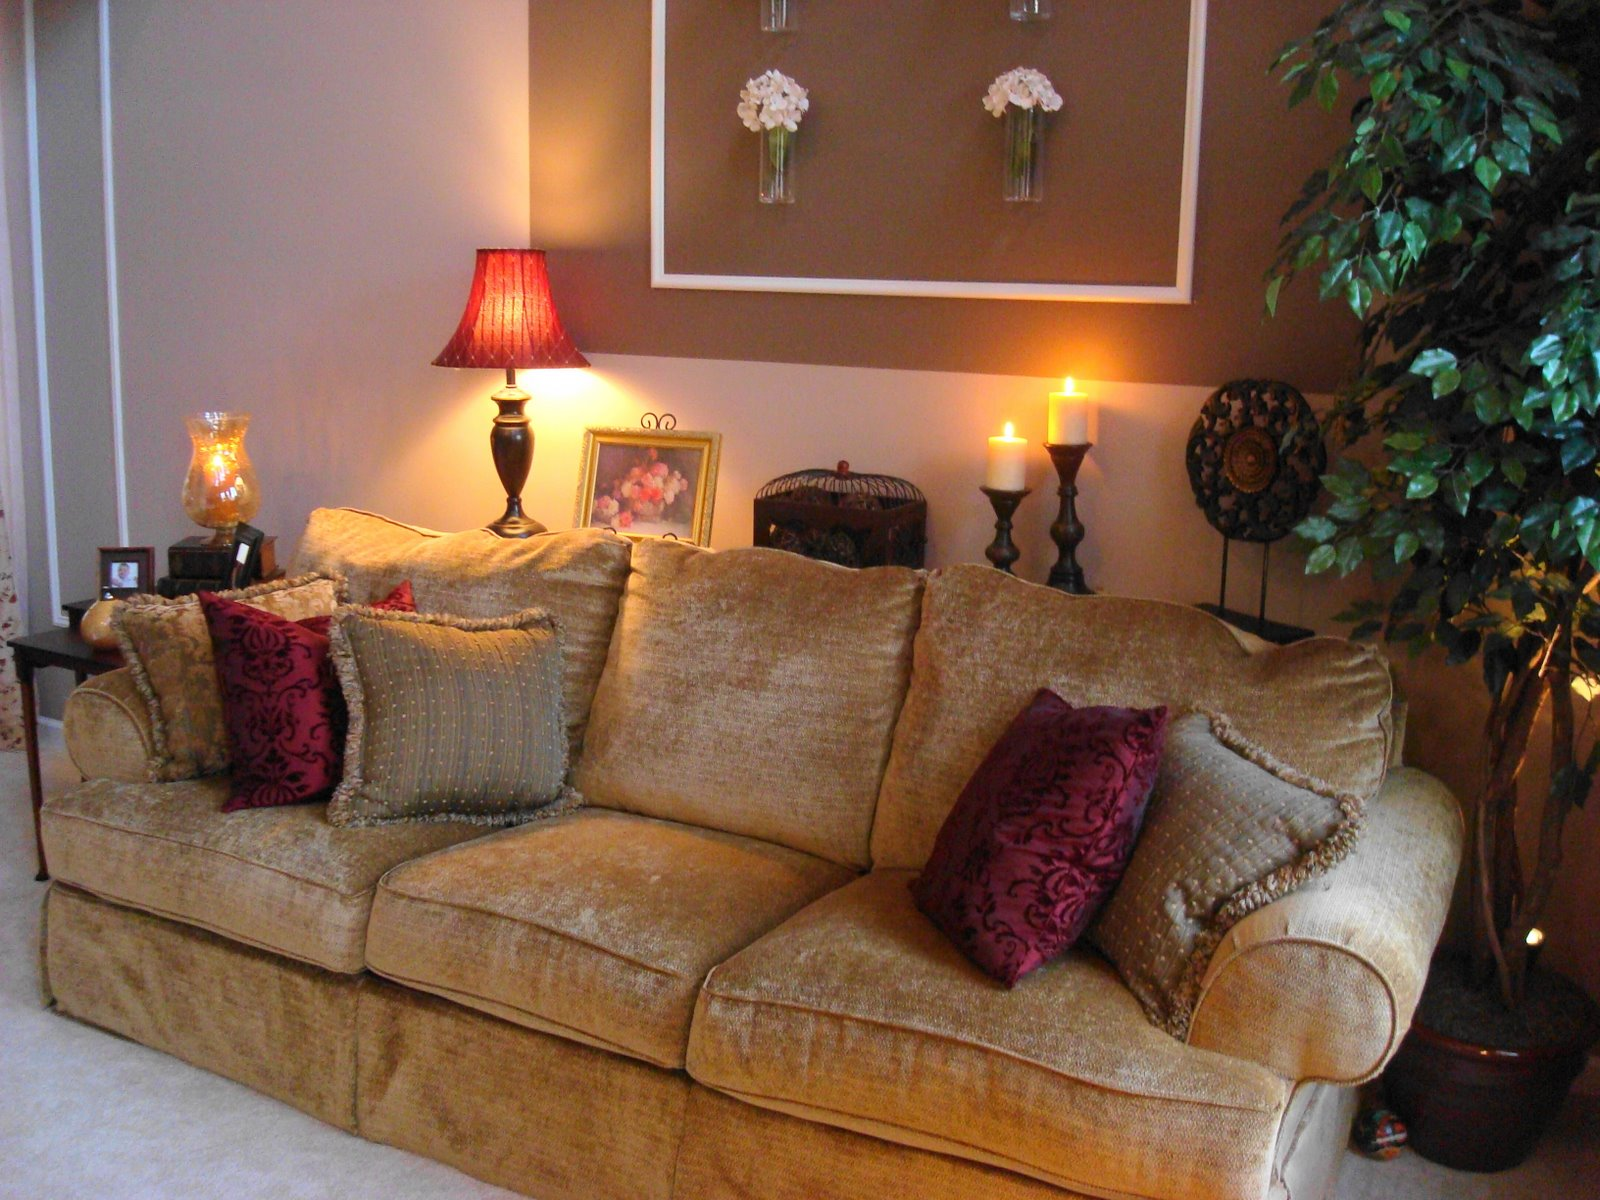 From Dark To Light: The Living Room Over The Years! From